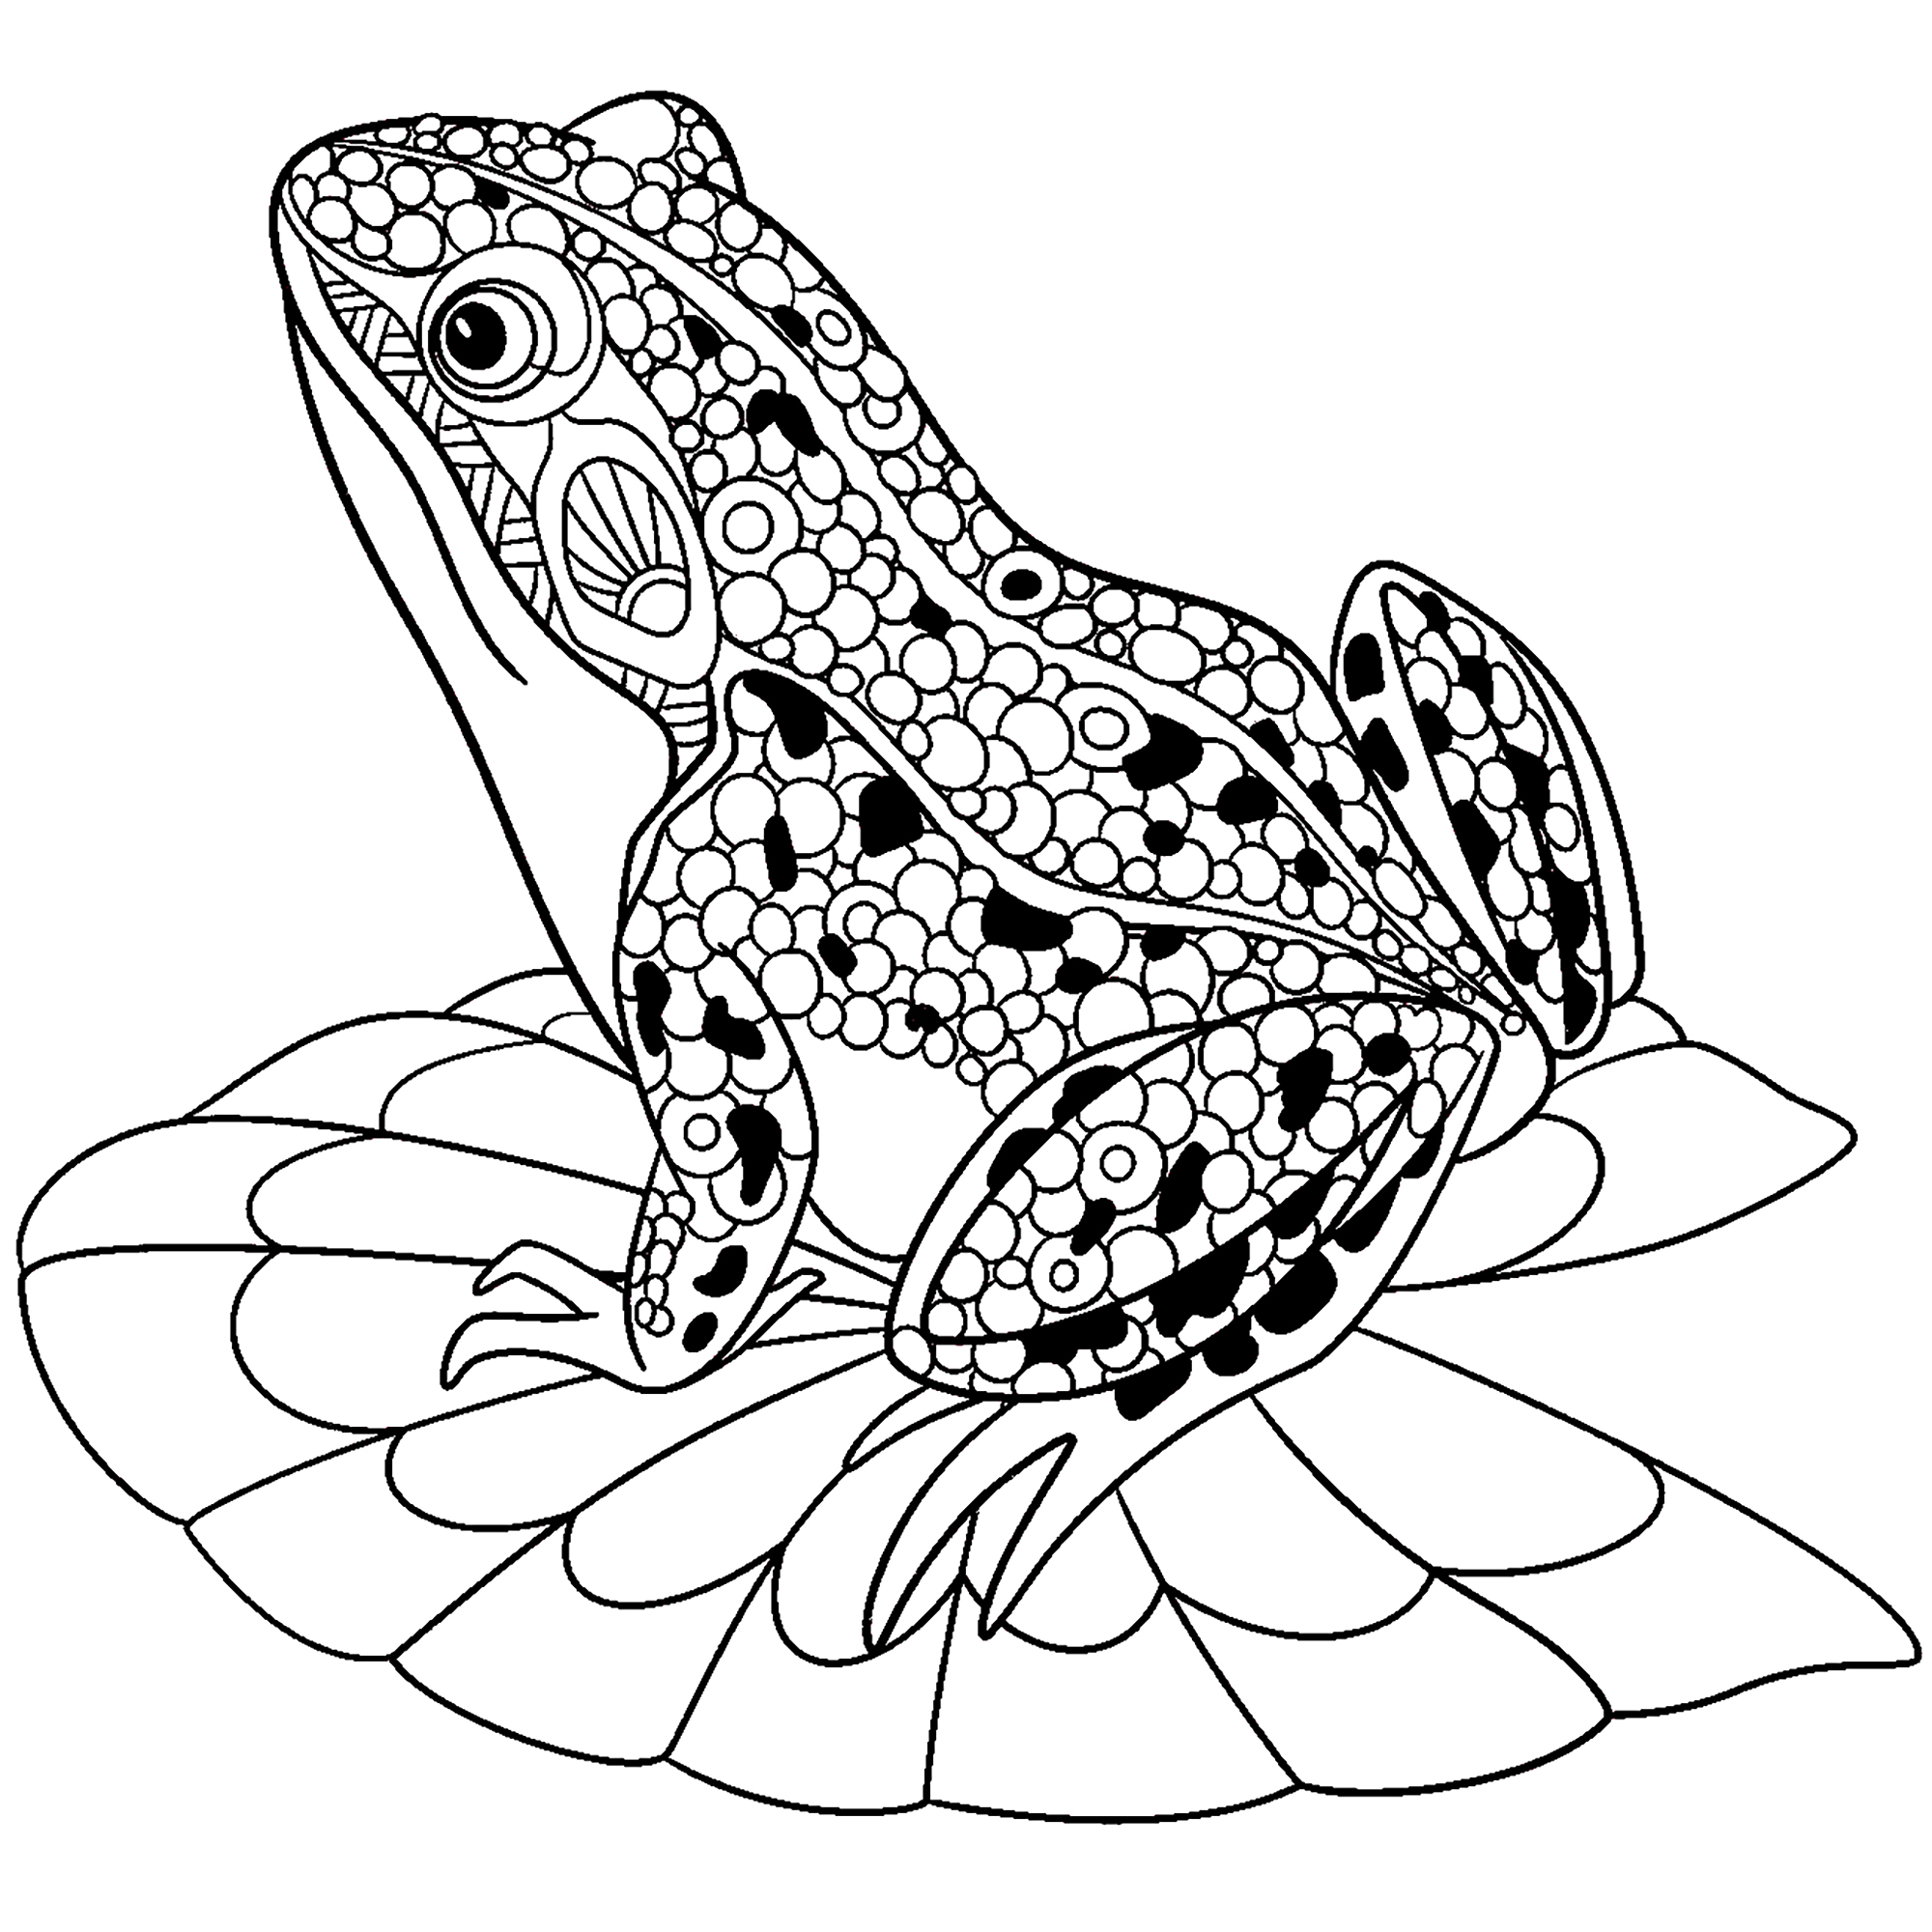 pictures of frogs to color frogs free to color for children frogs kids coloring pages of pictures color to frogs